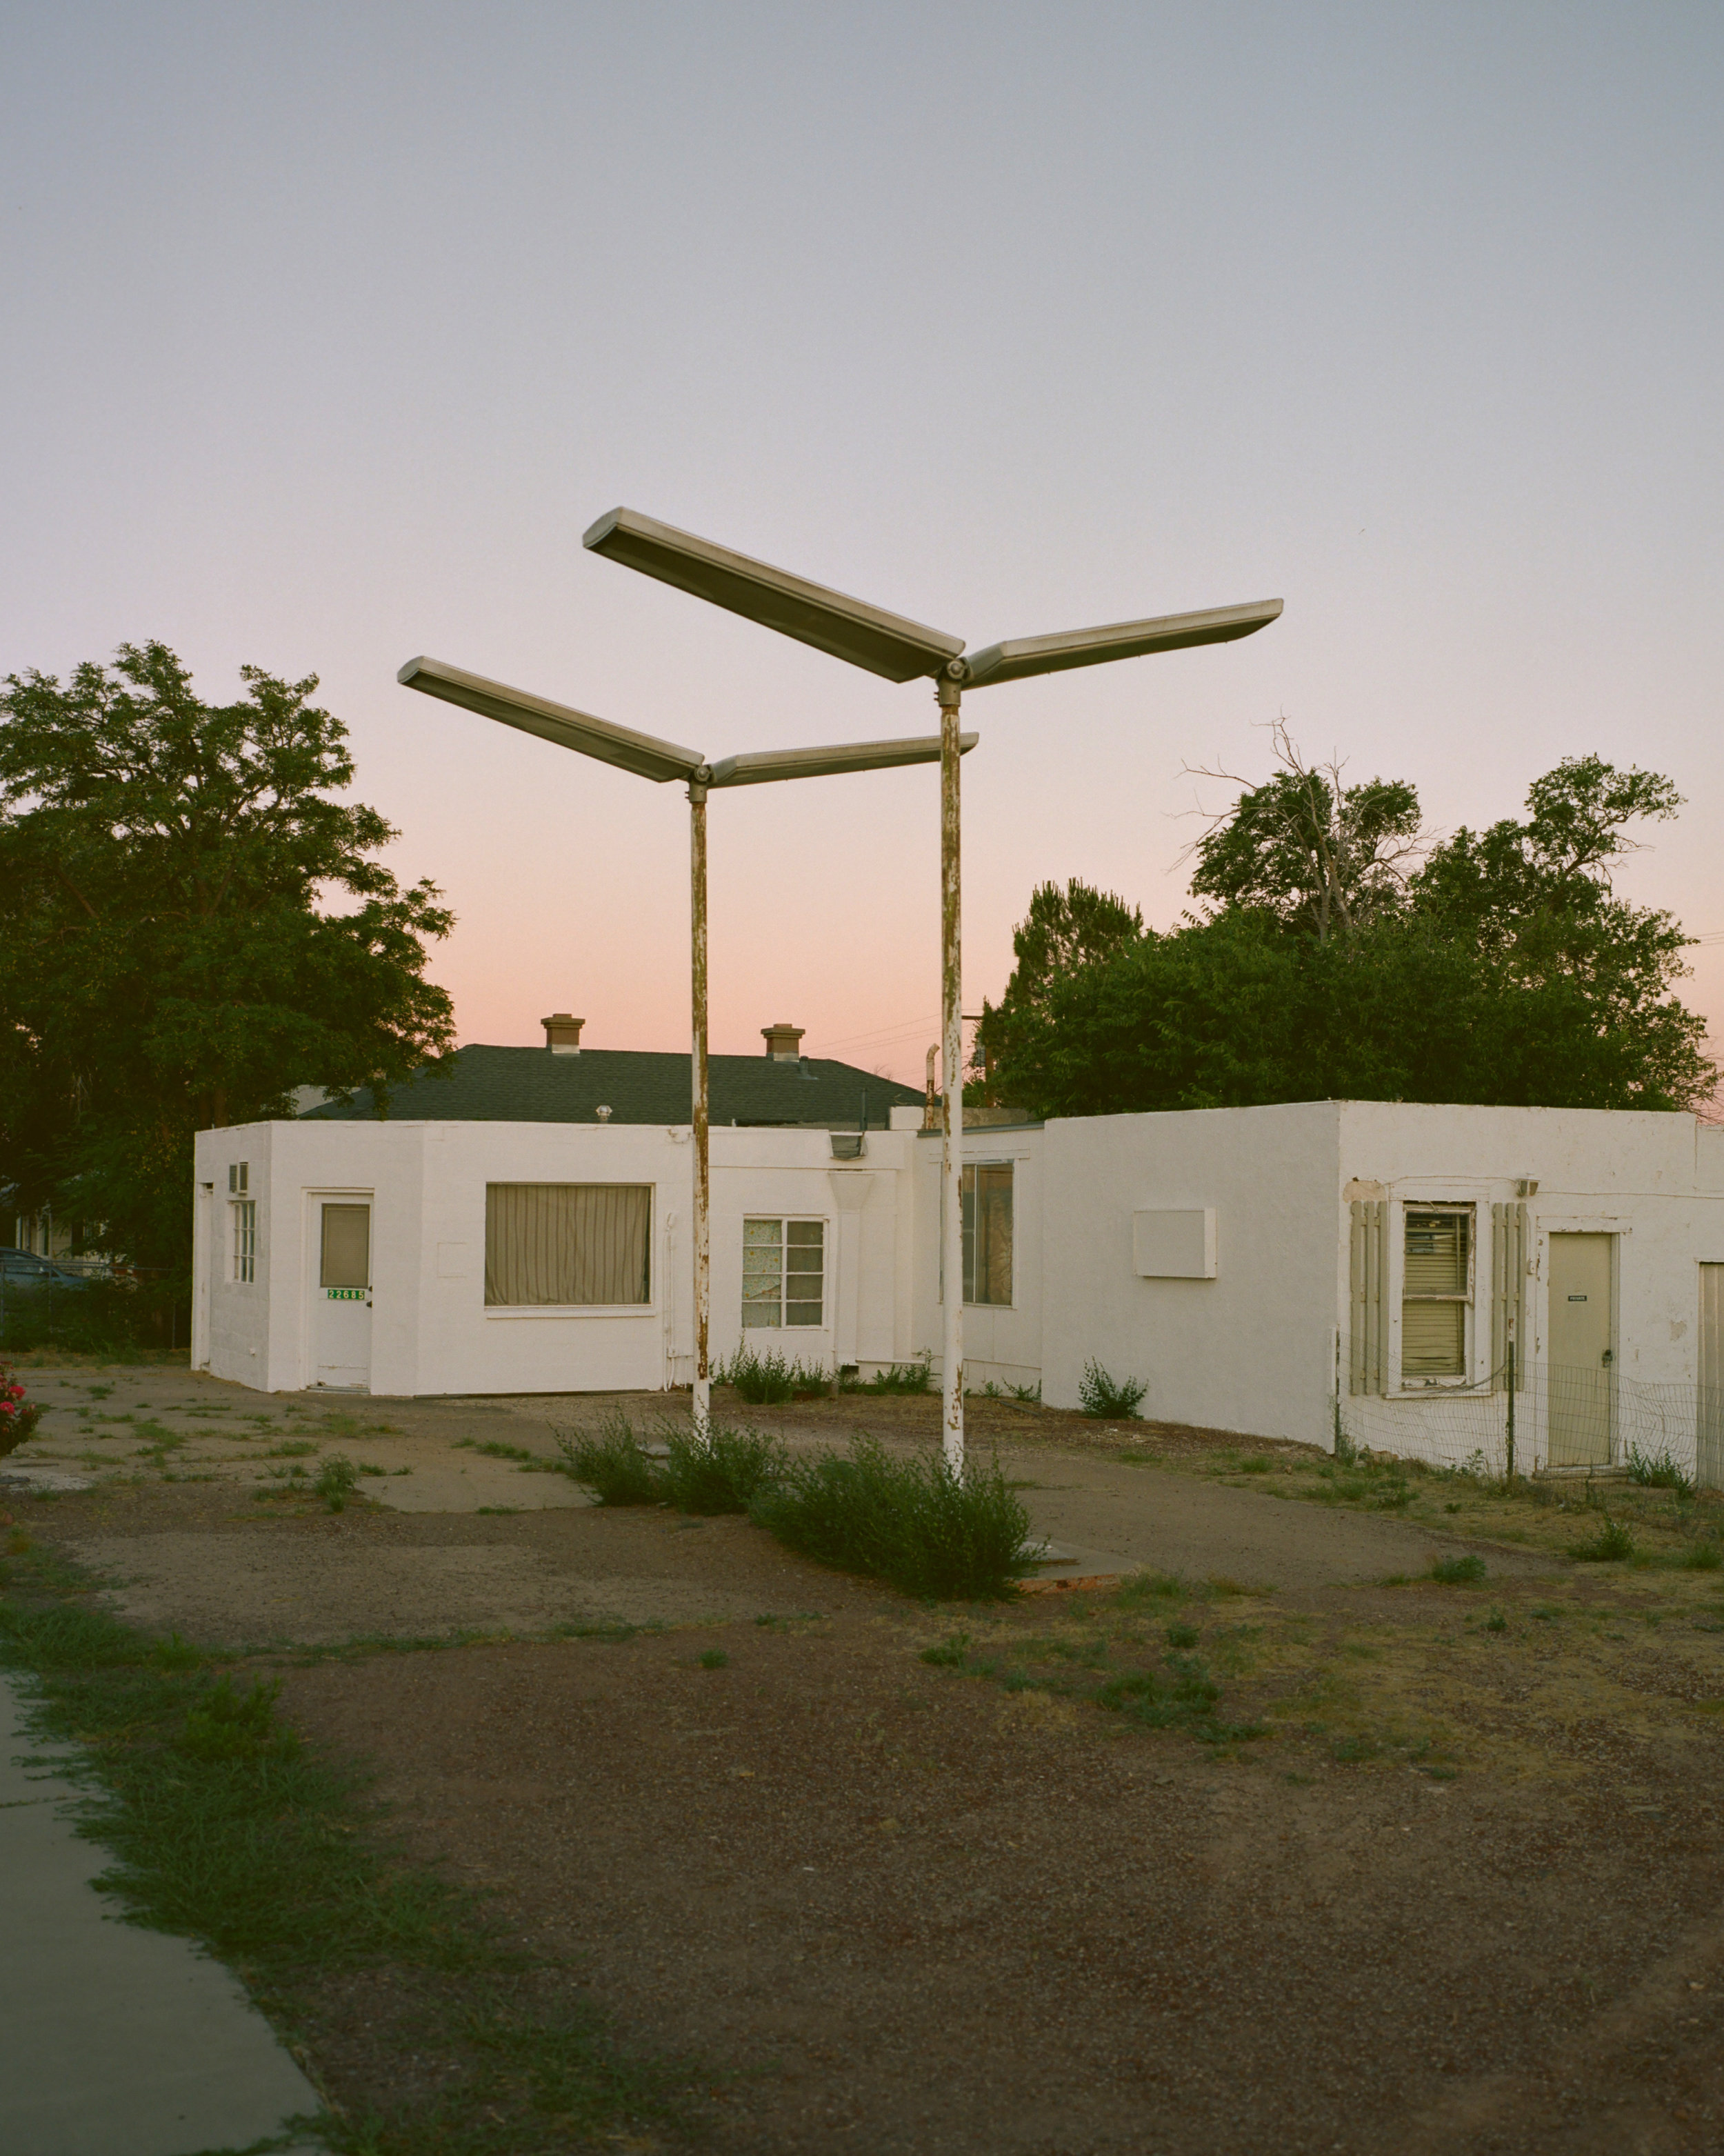 The old service station lights, Seligman, AZ, 2019 - 120 Portra (6x7)